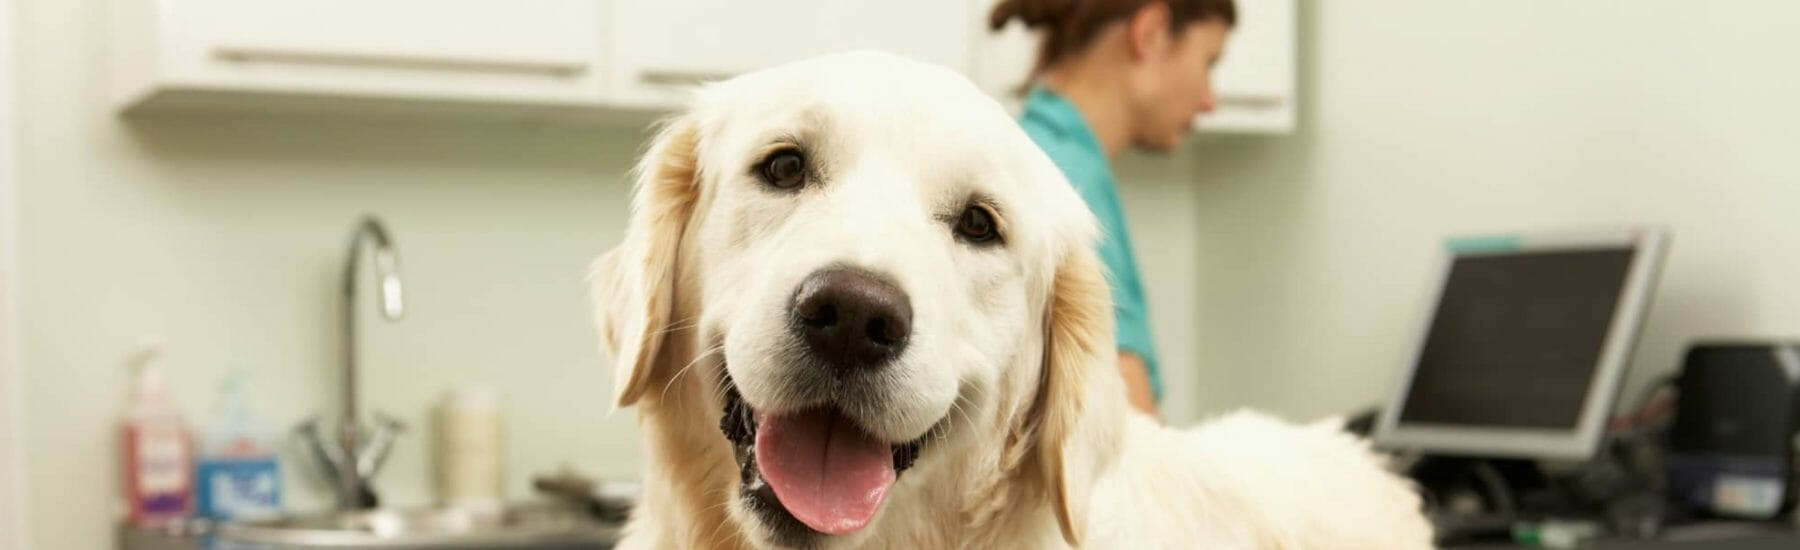 Golden dog looking at camera while veterinarian is on computer